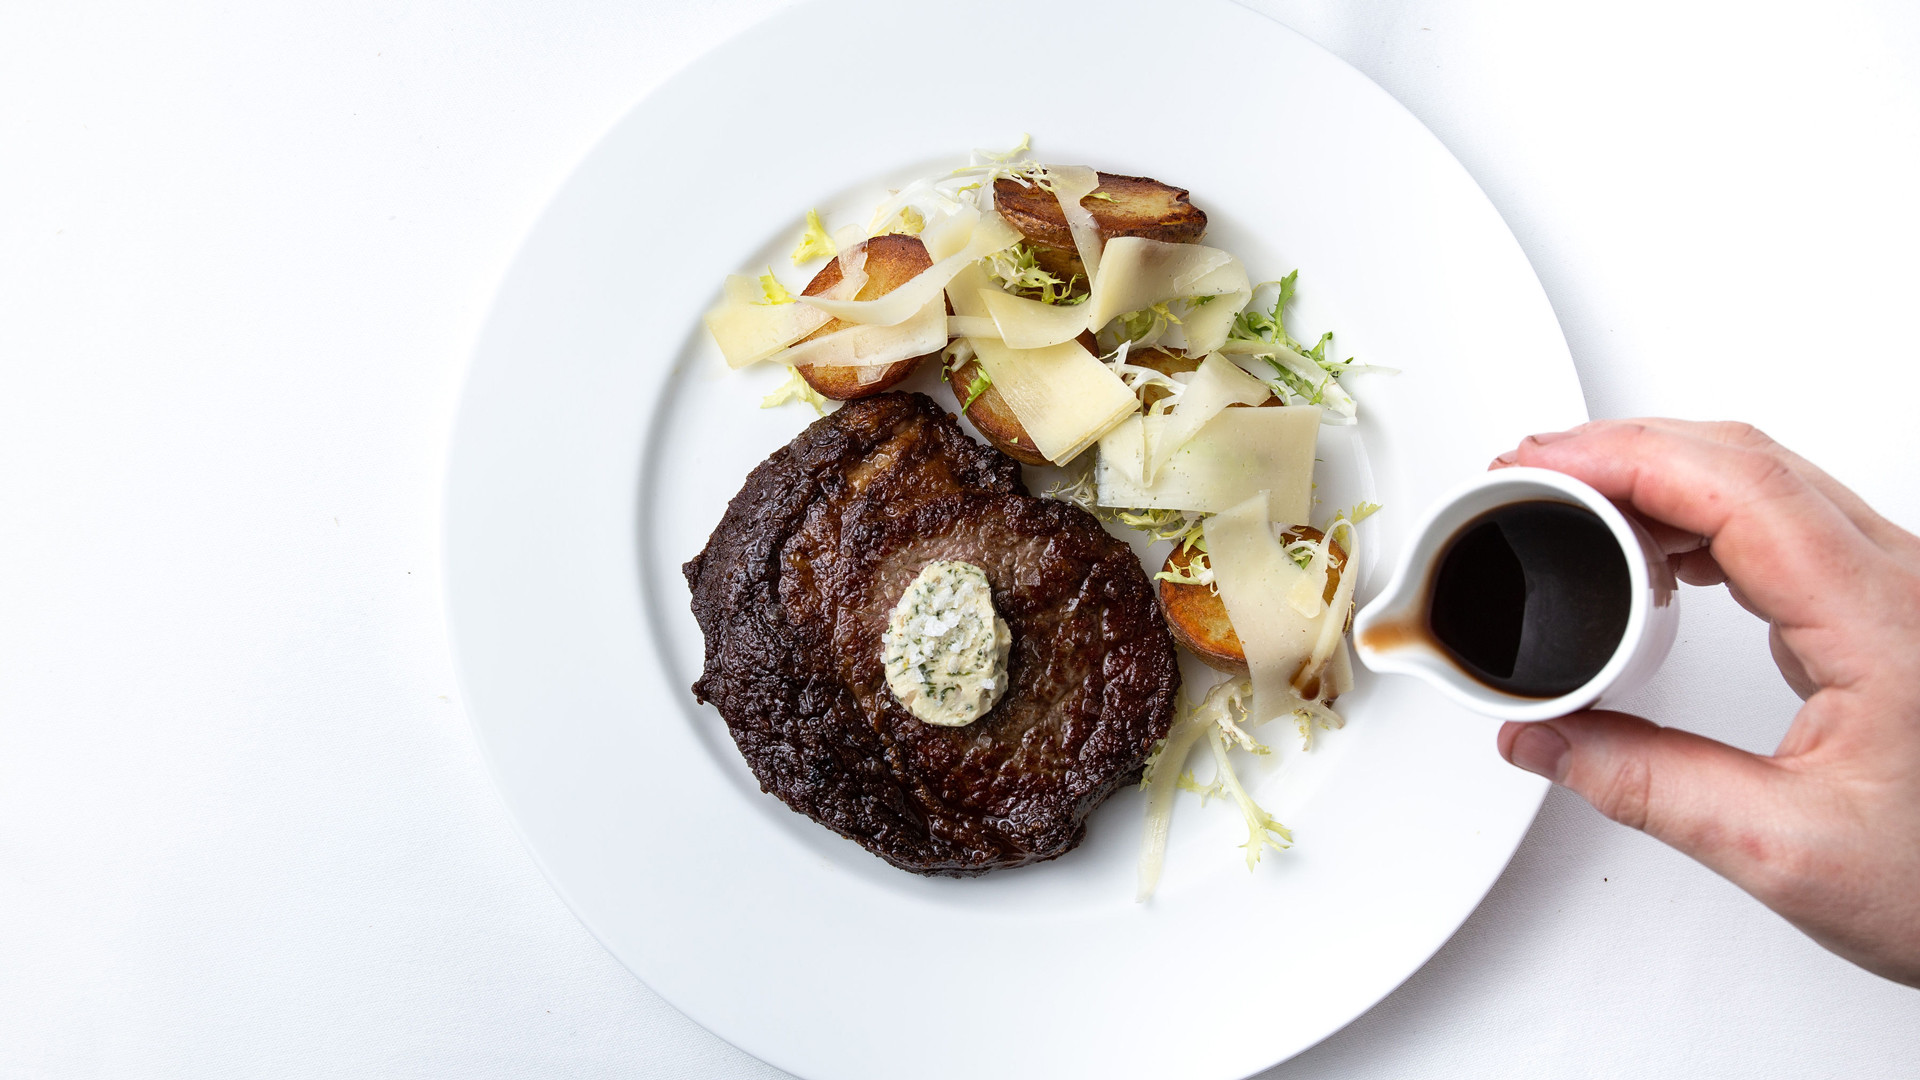 Restaurants in Victoria, B.C. plus hotels, activities and more | 10oz dry aged beef ribeye at the Courtney Room at the Magnolia Hotel & Spa